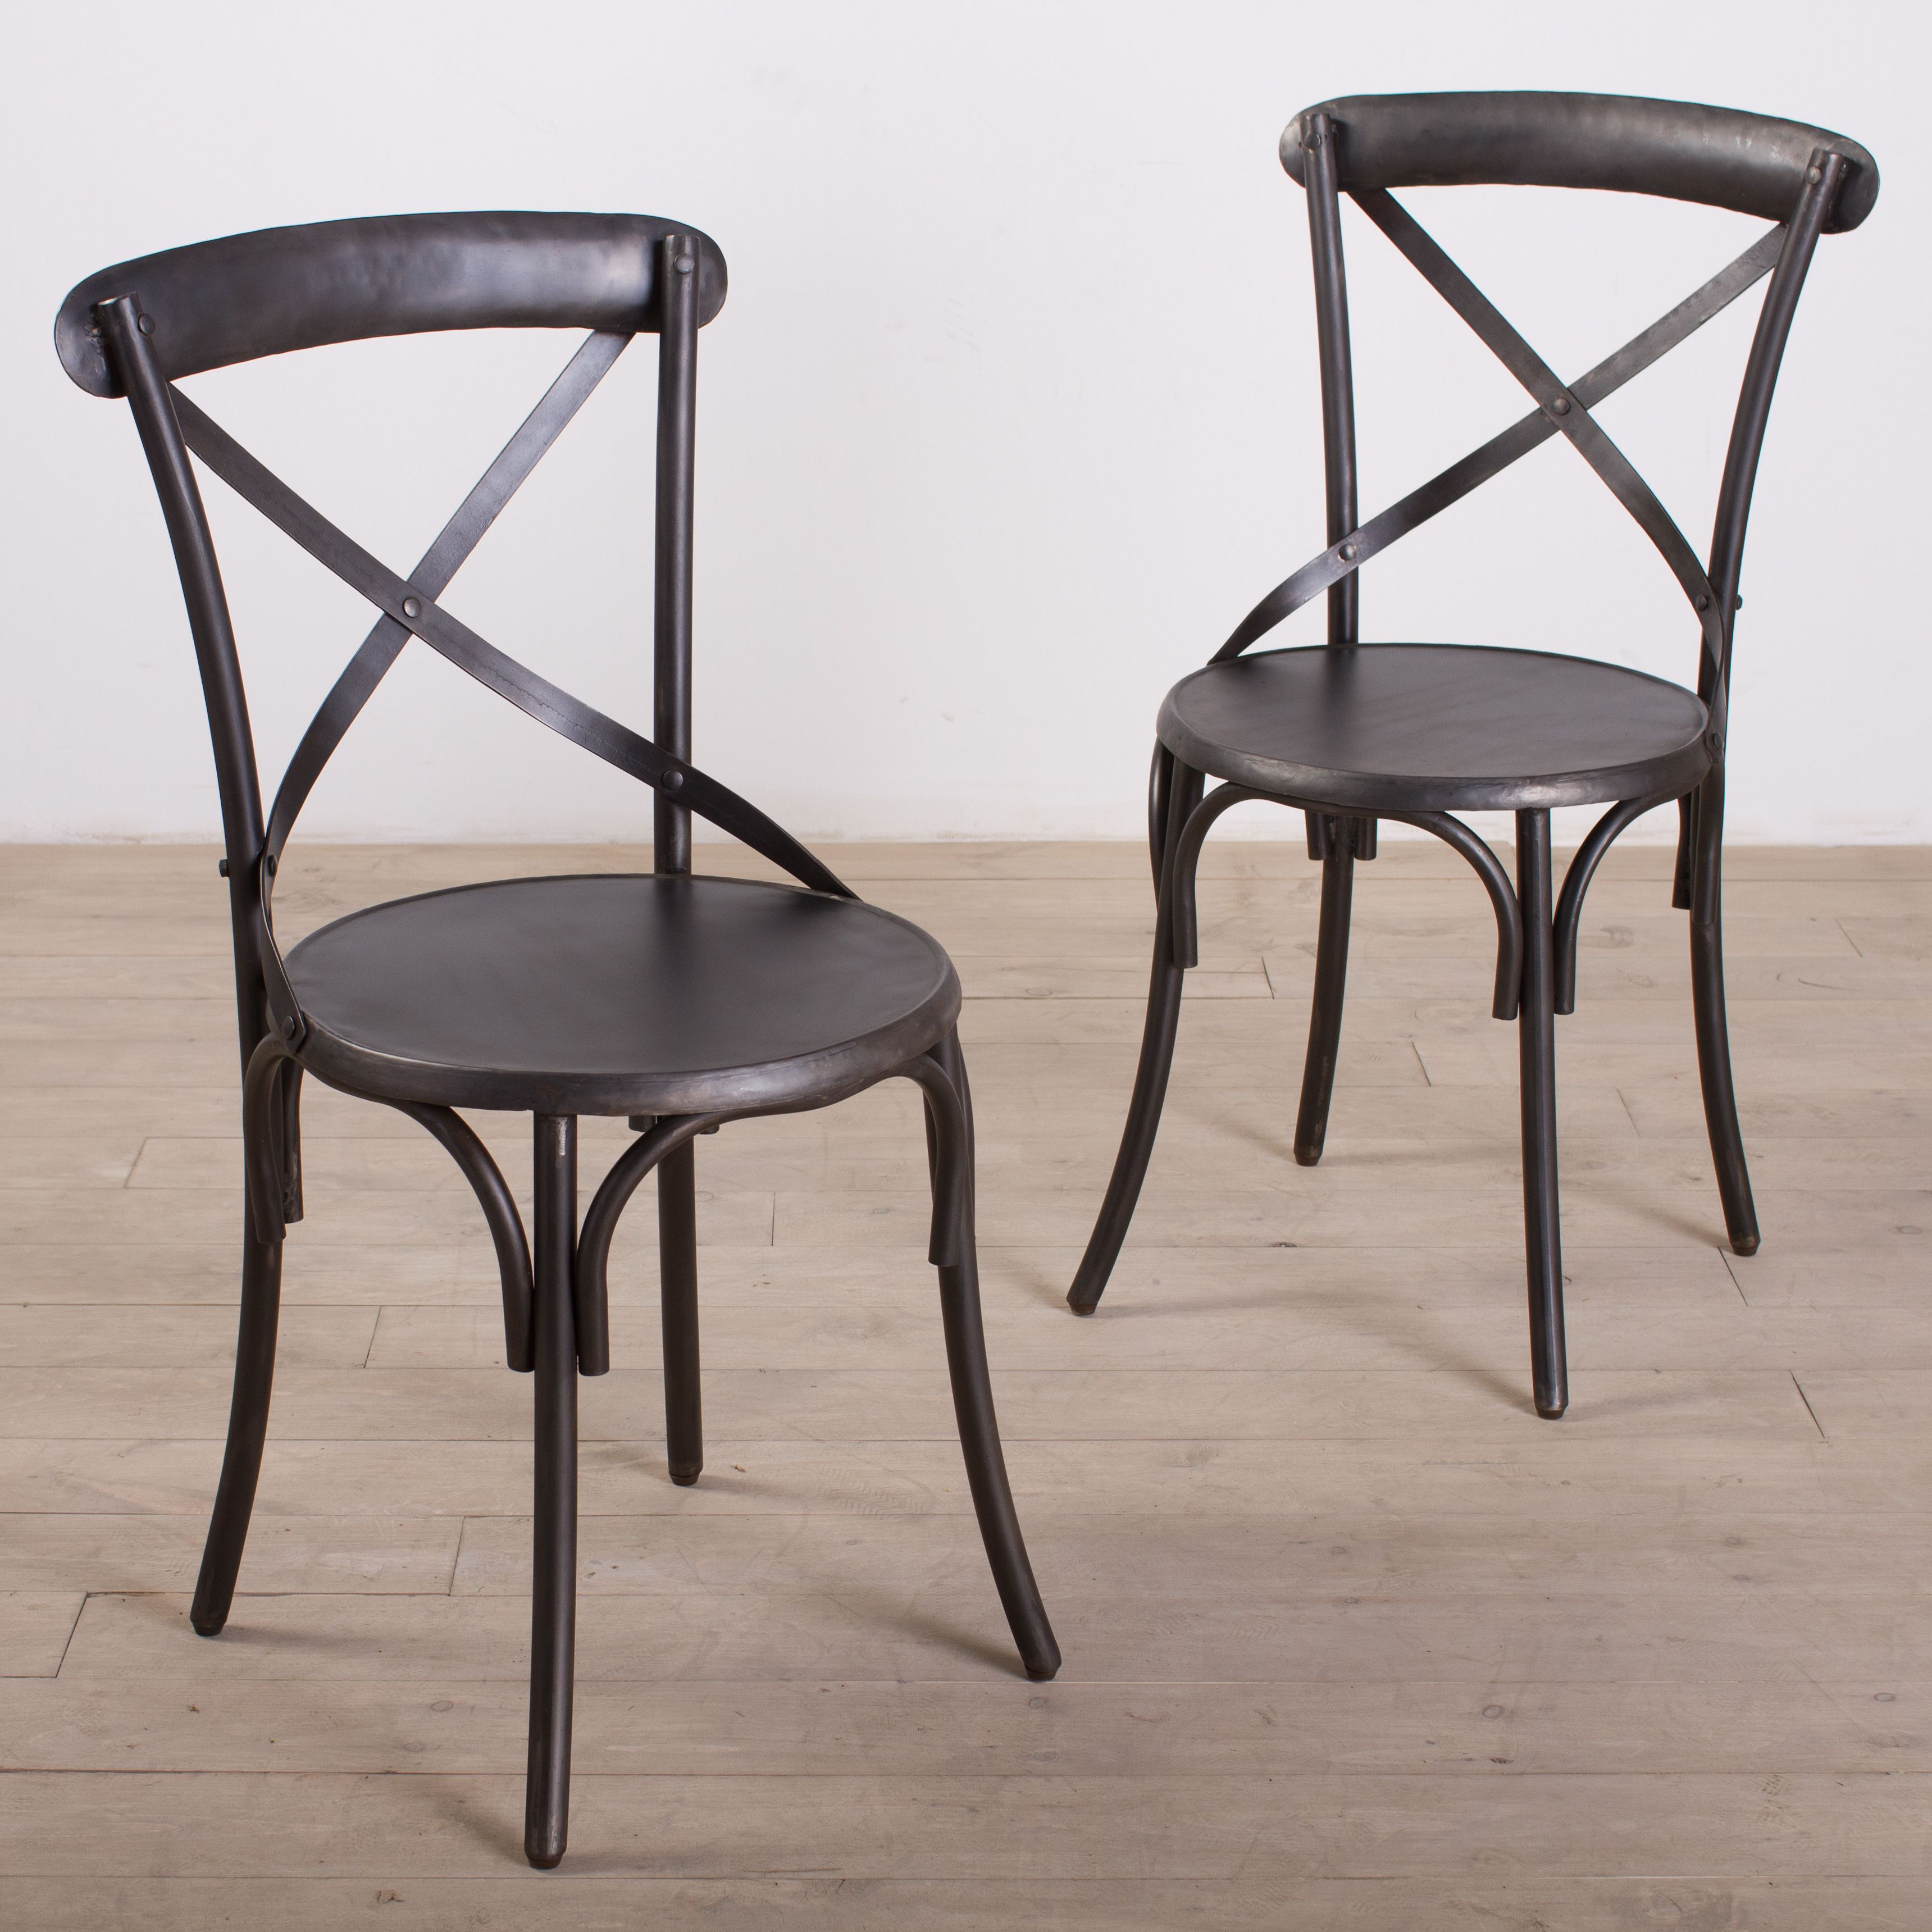 Lovely Indoor Bistro Table and Chairs